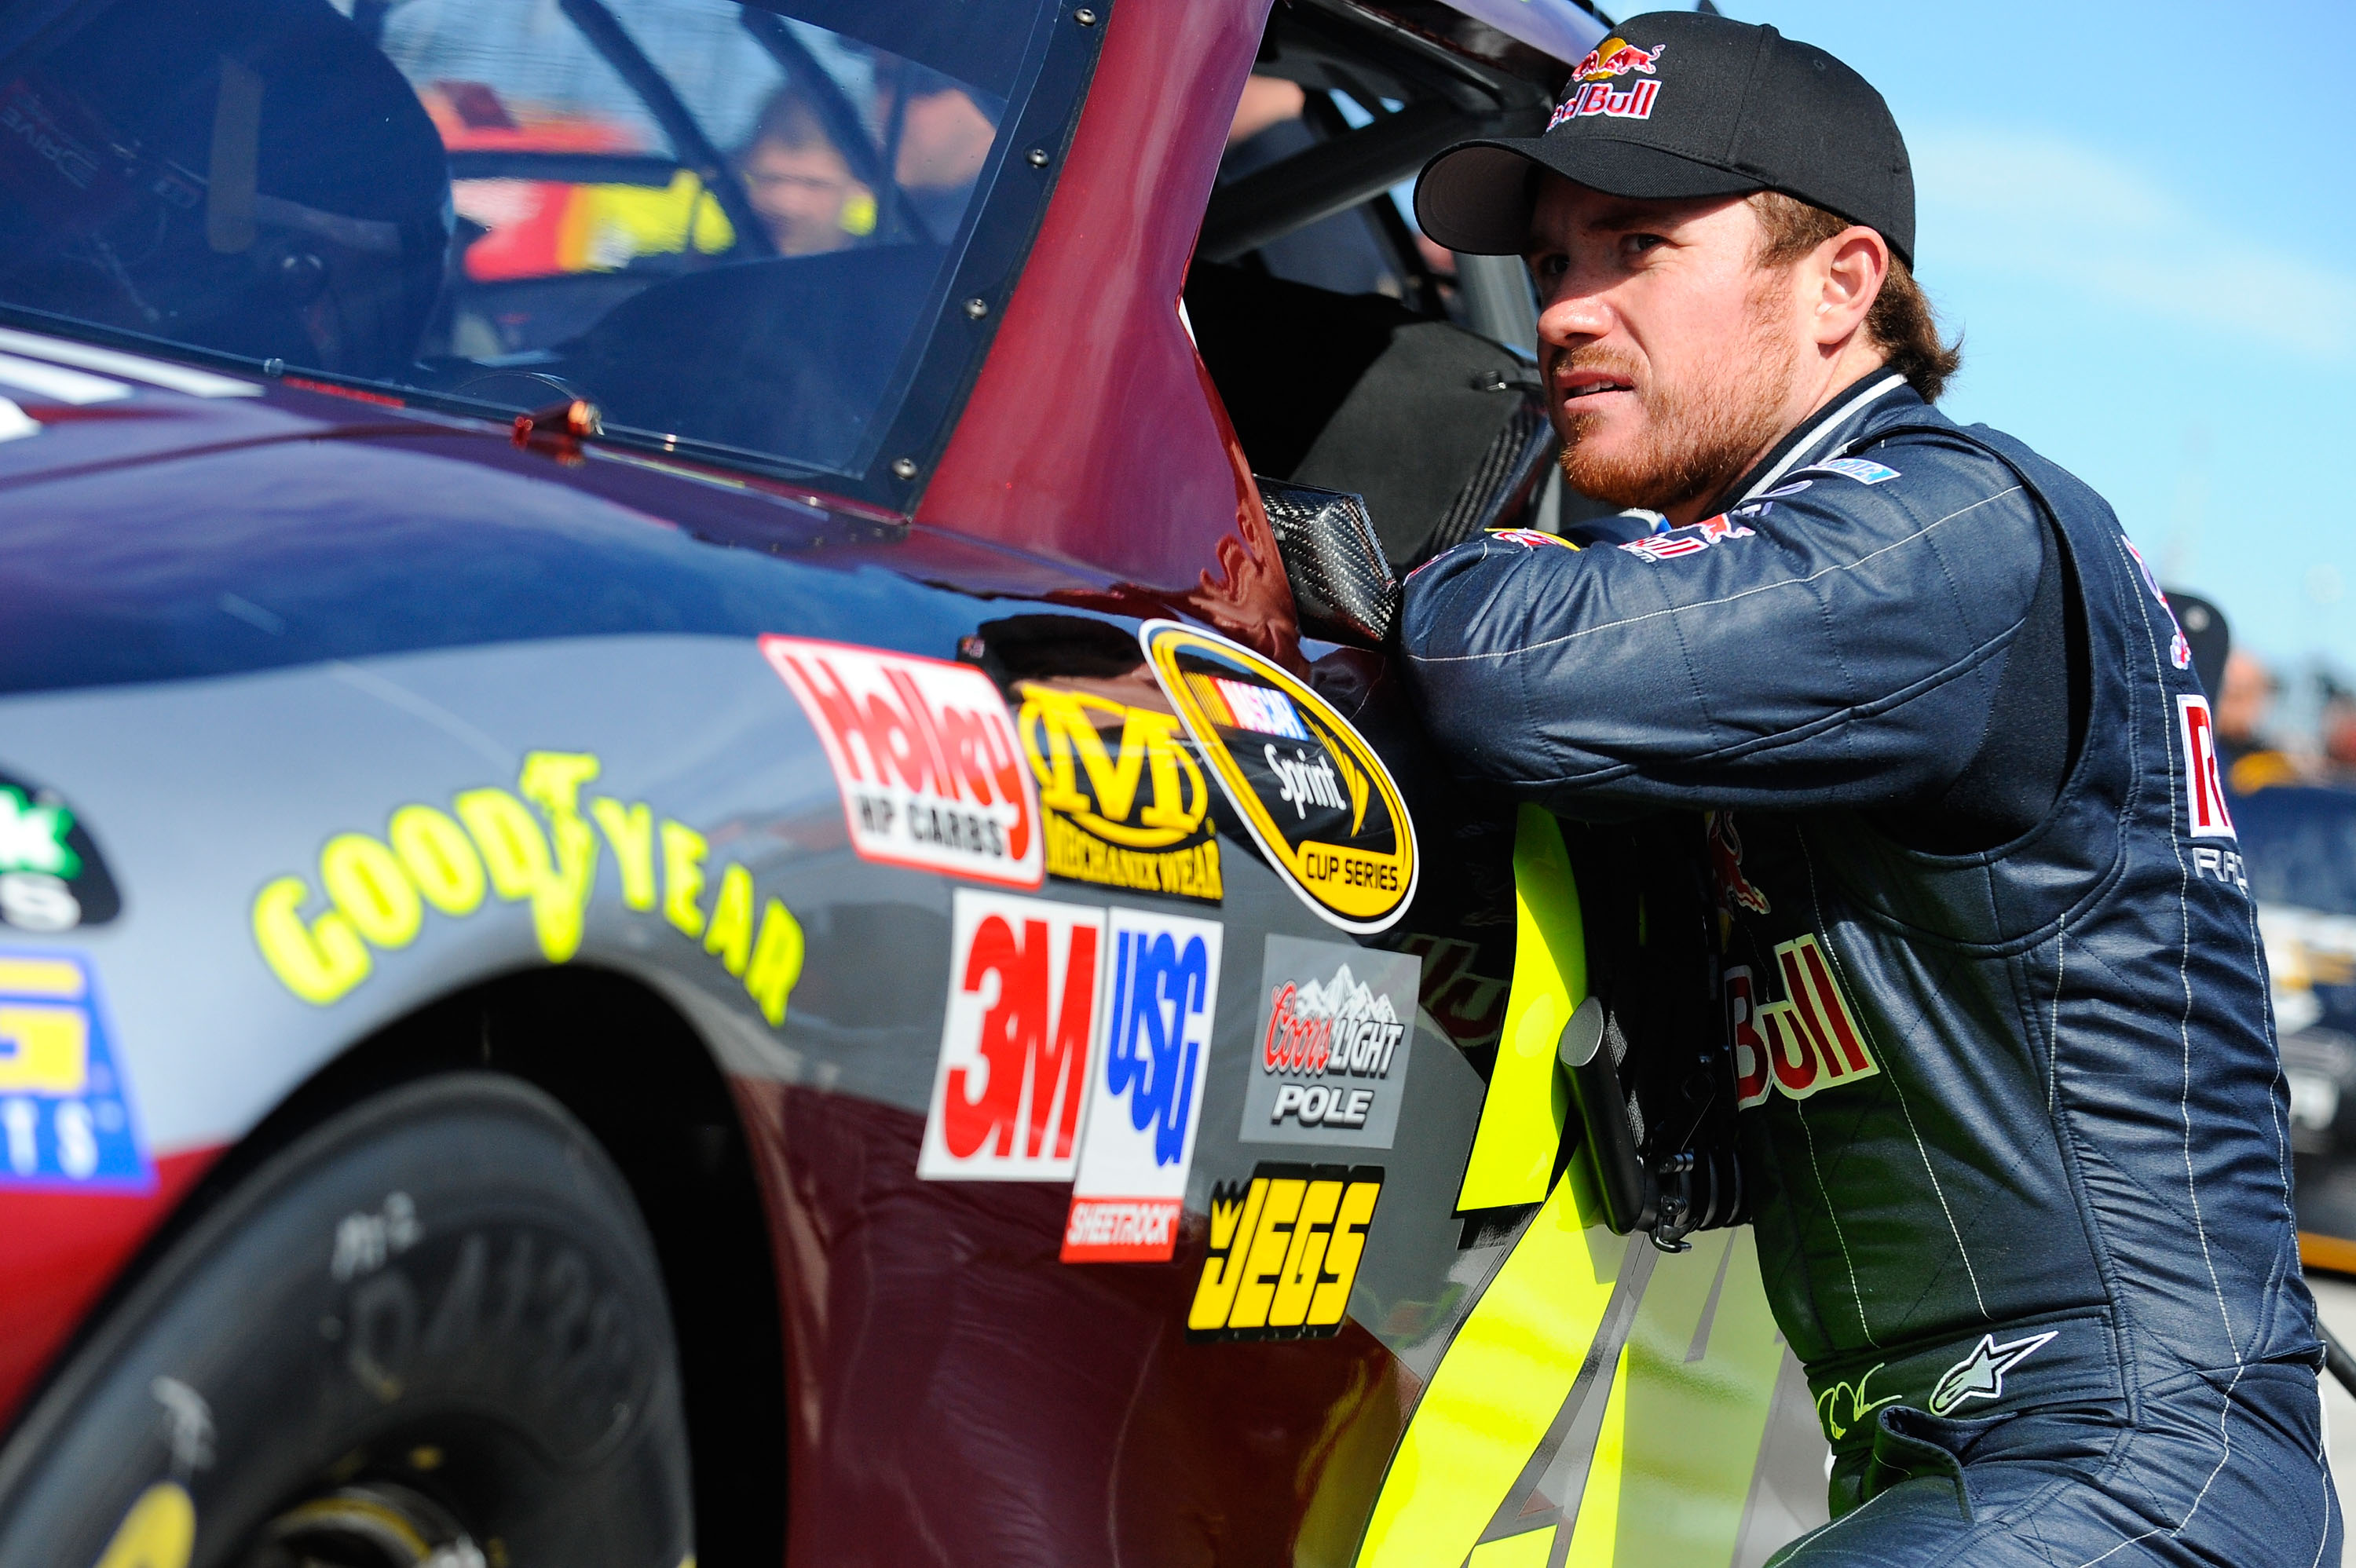 Brian Vickers returns after dealing with blood clot issues in 2010.